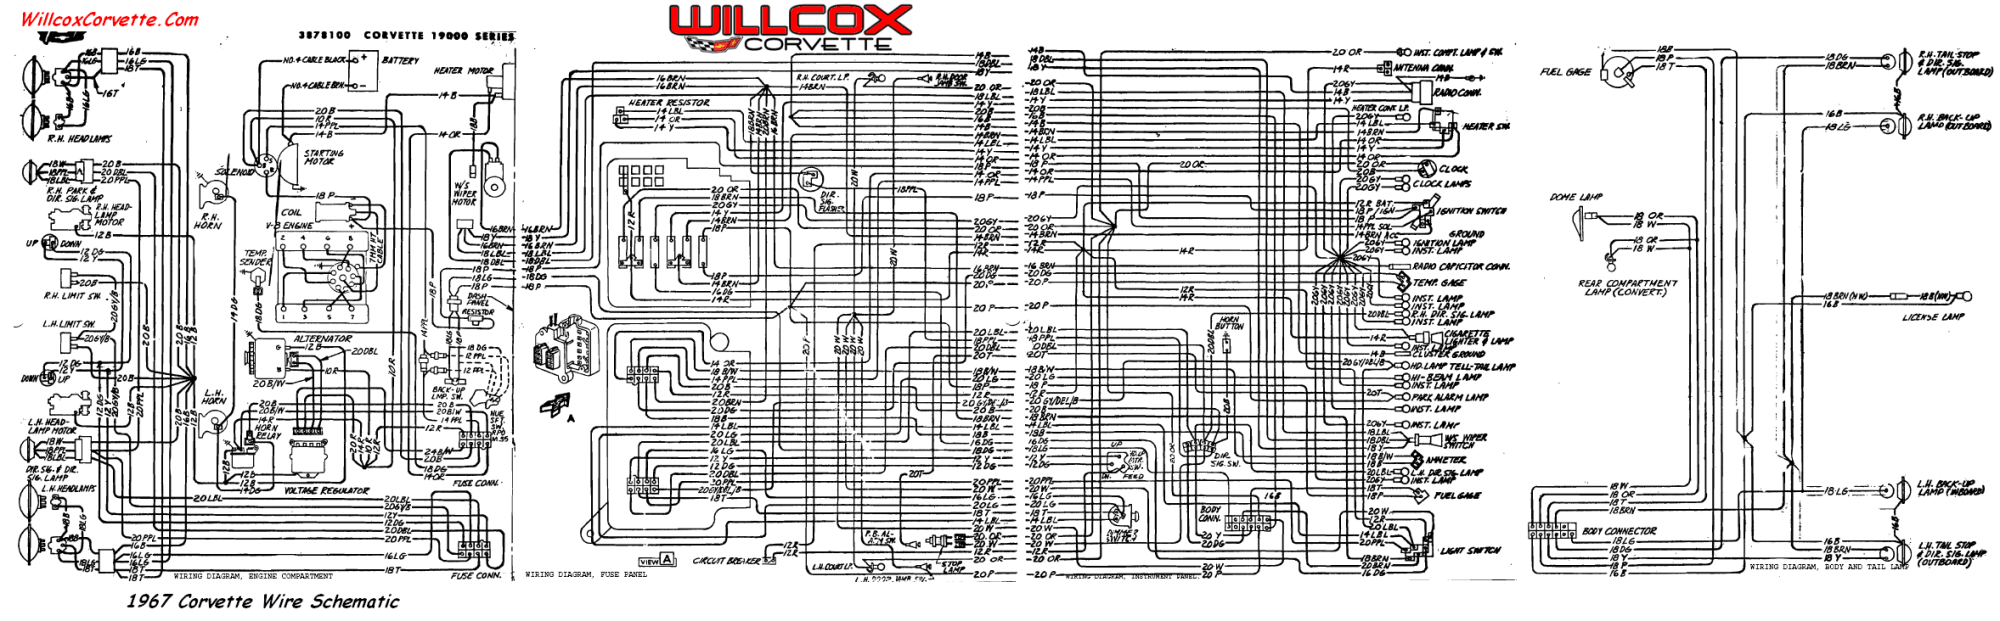 hight resolution of 1978 corvette fuse diagram data wiring diagram schema 1980 corvette fuse box located 1972 c3 corvette fuse box